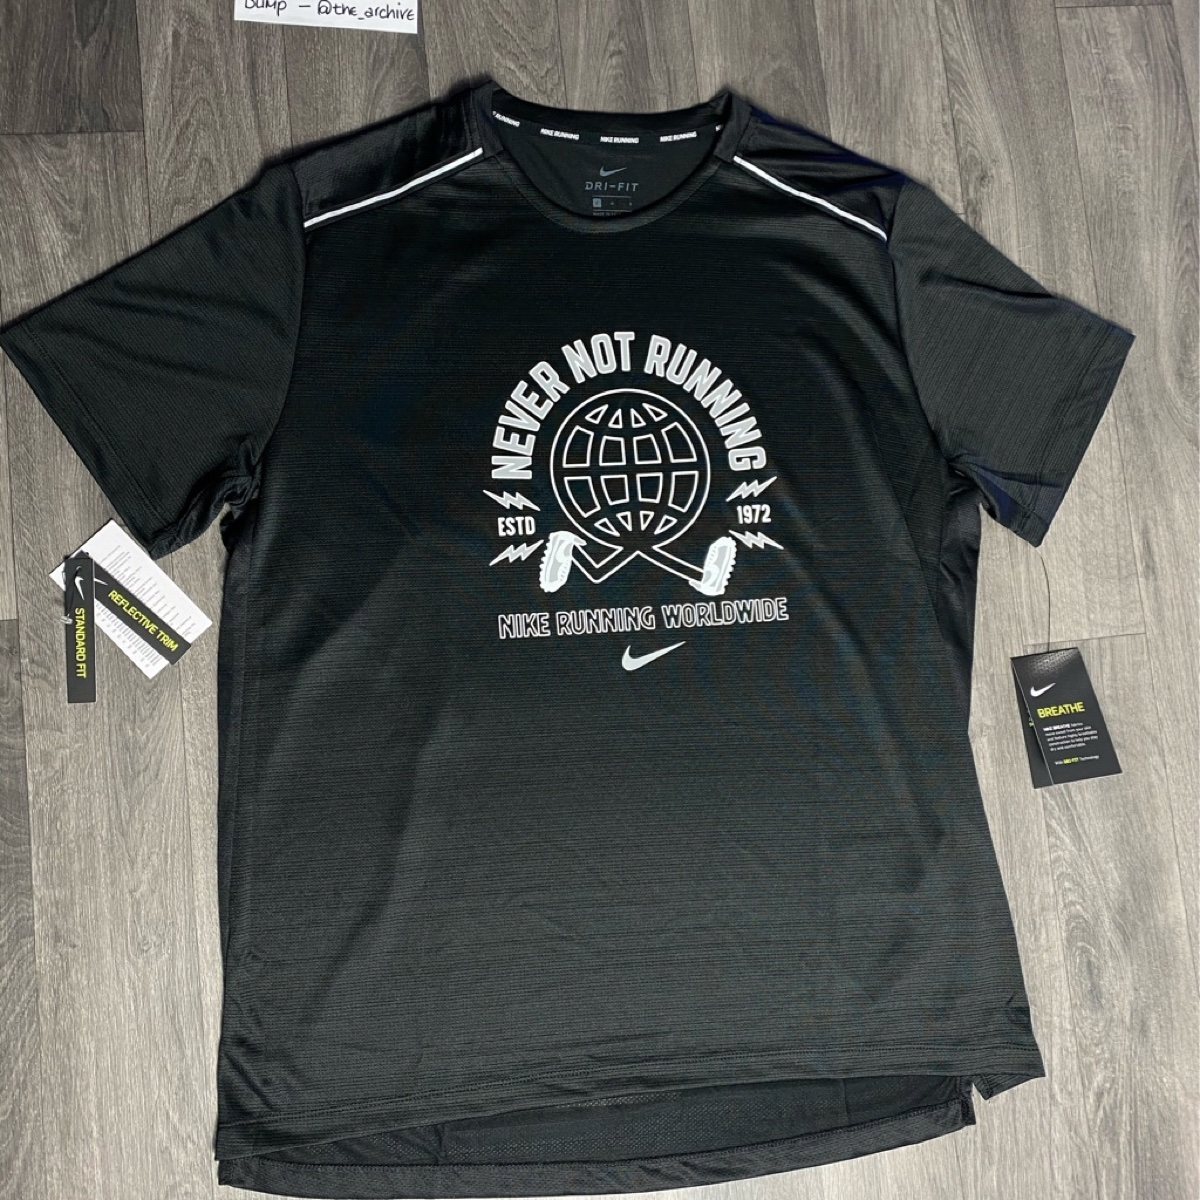 Nike Dri Fit wild run black tee